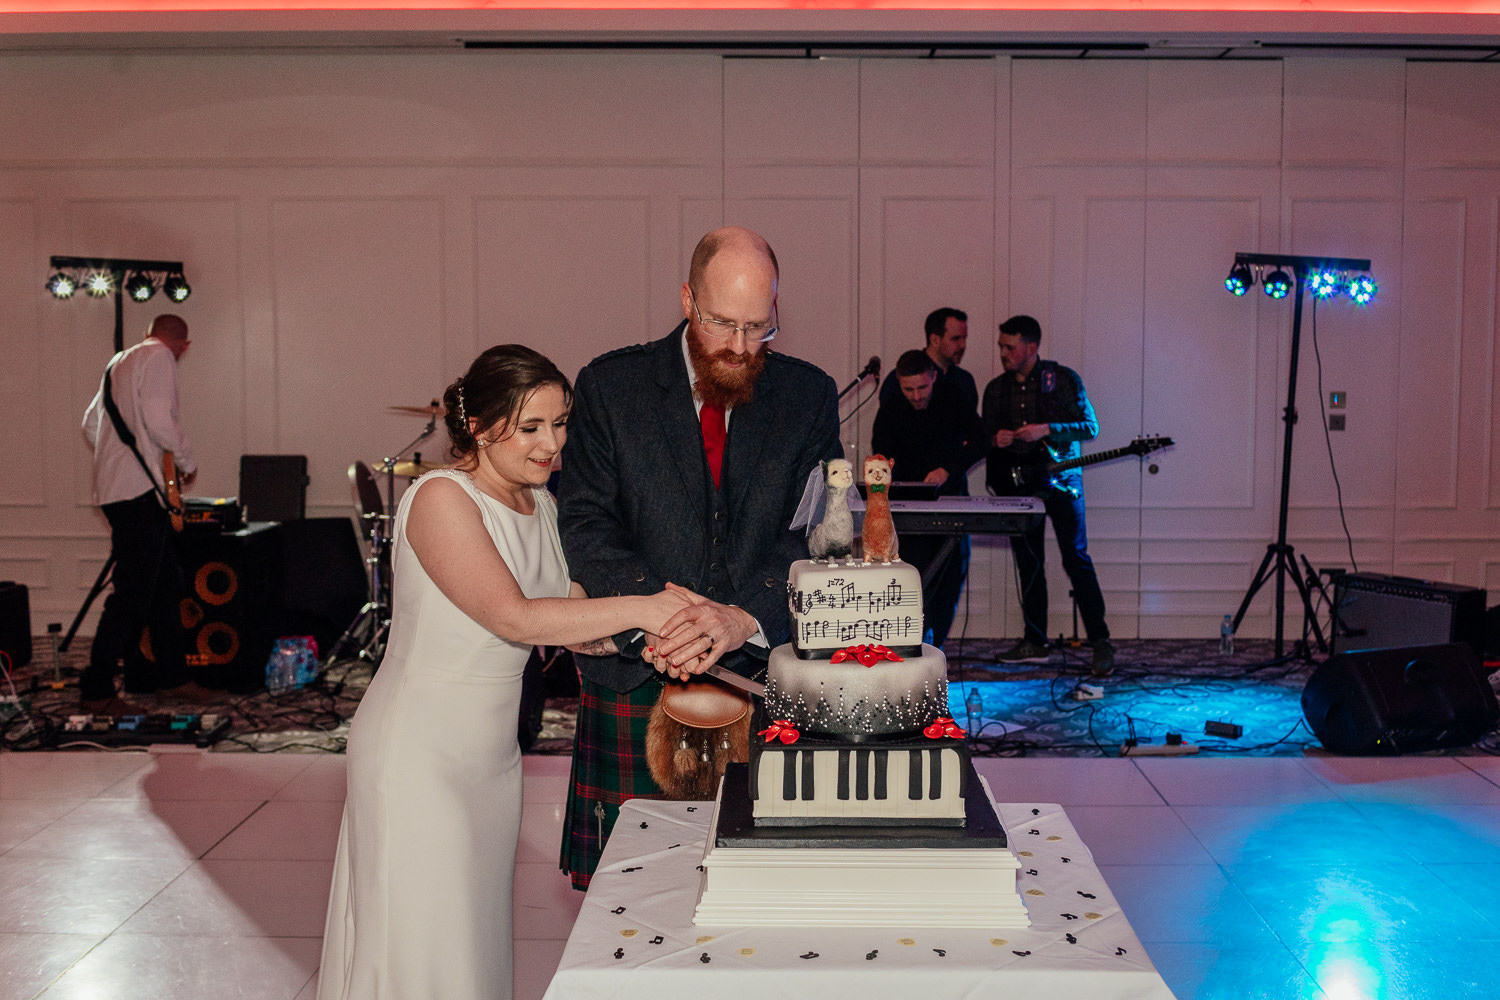 rock music wedding llama rammstein music piano cake bride groom cutting cake chester hotel wedding aberdeen